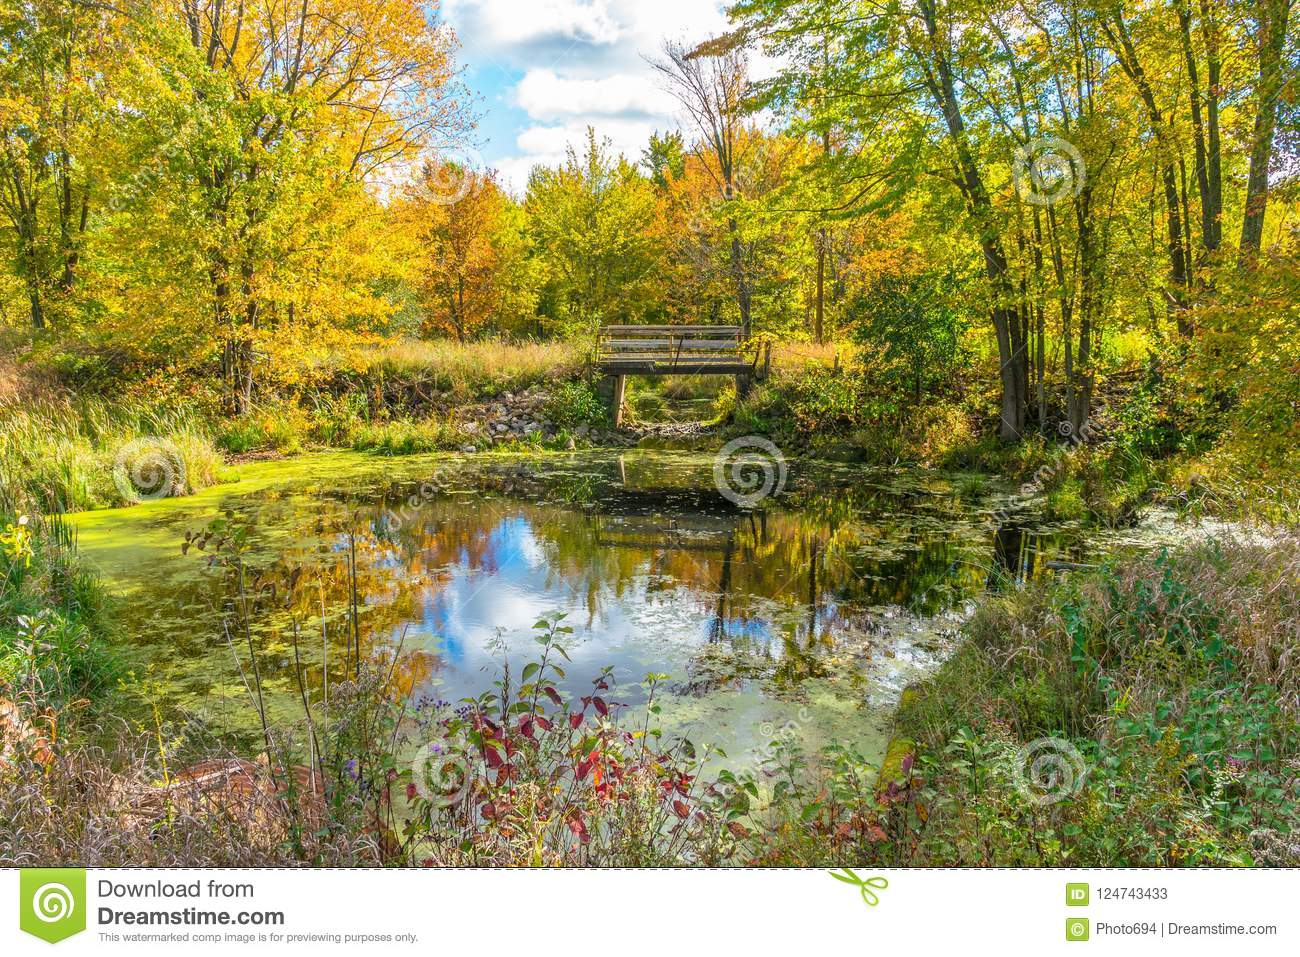 A picturesque autumn forest reflection landscape with footbridge over pond.